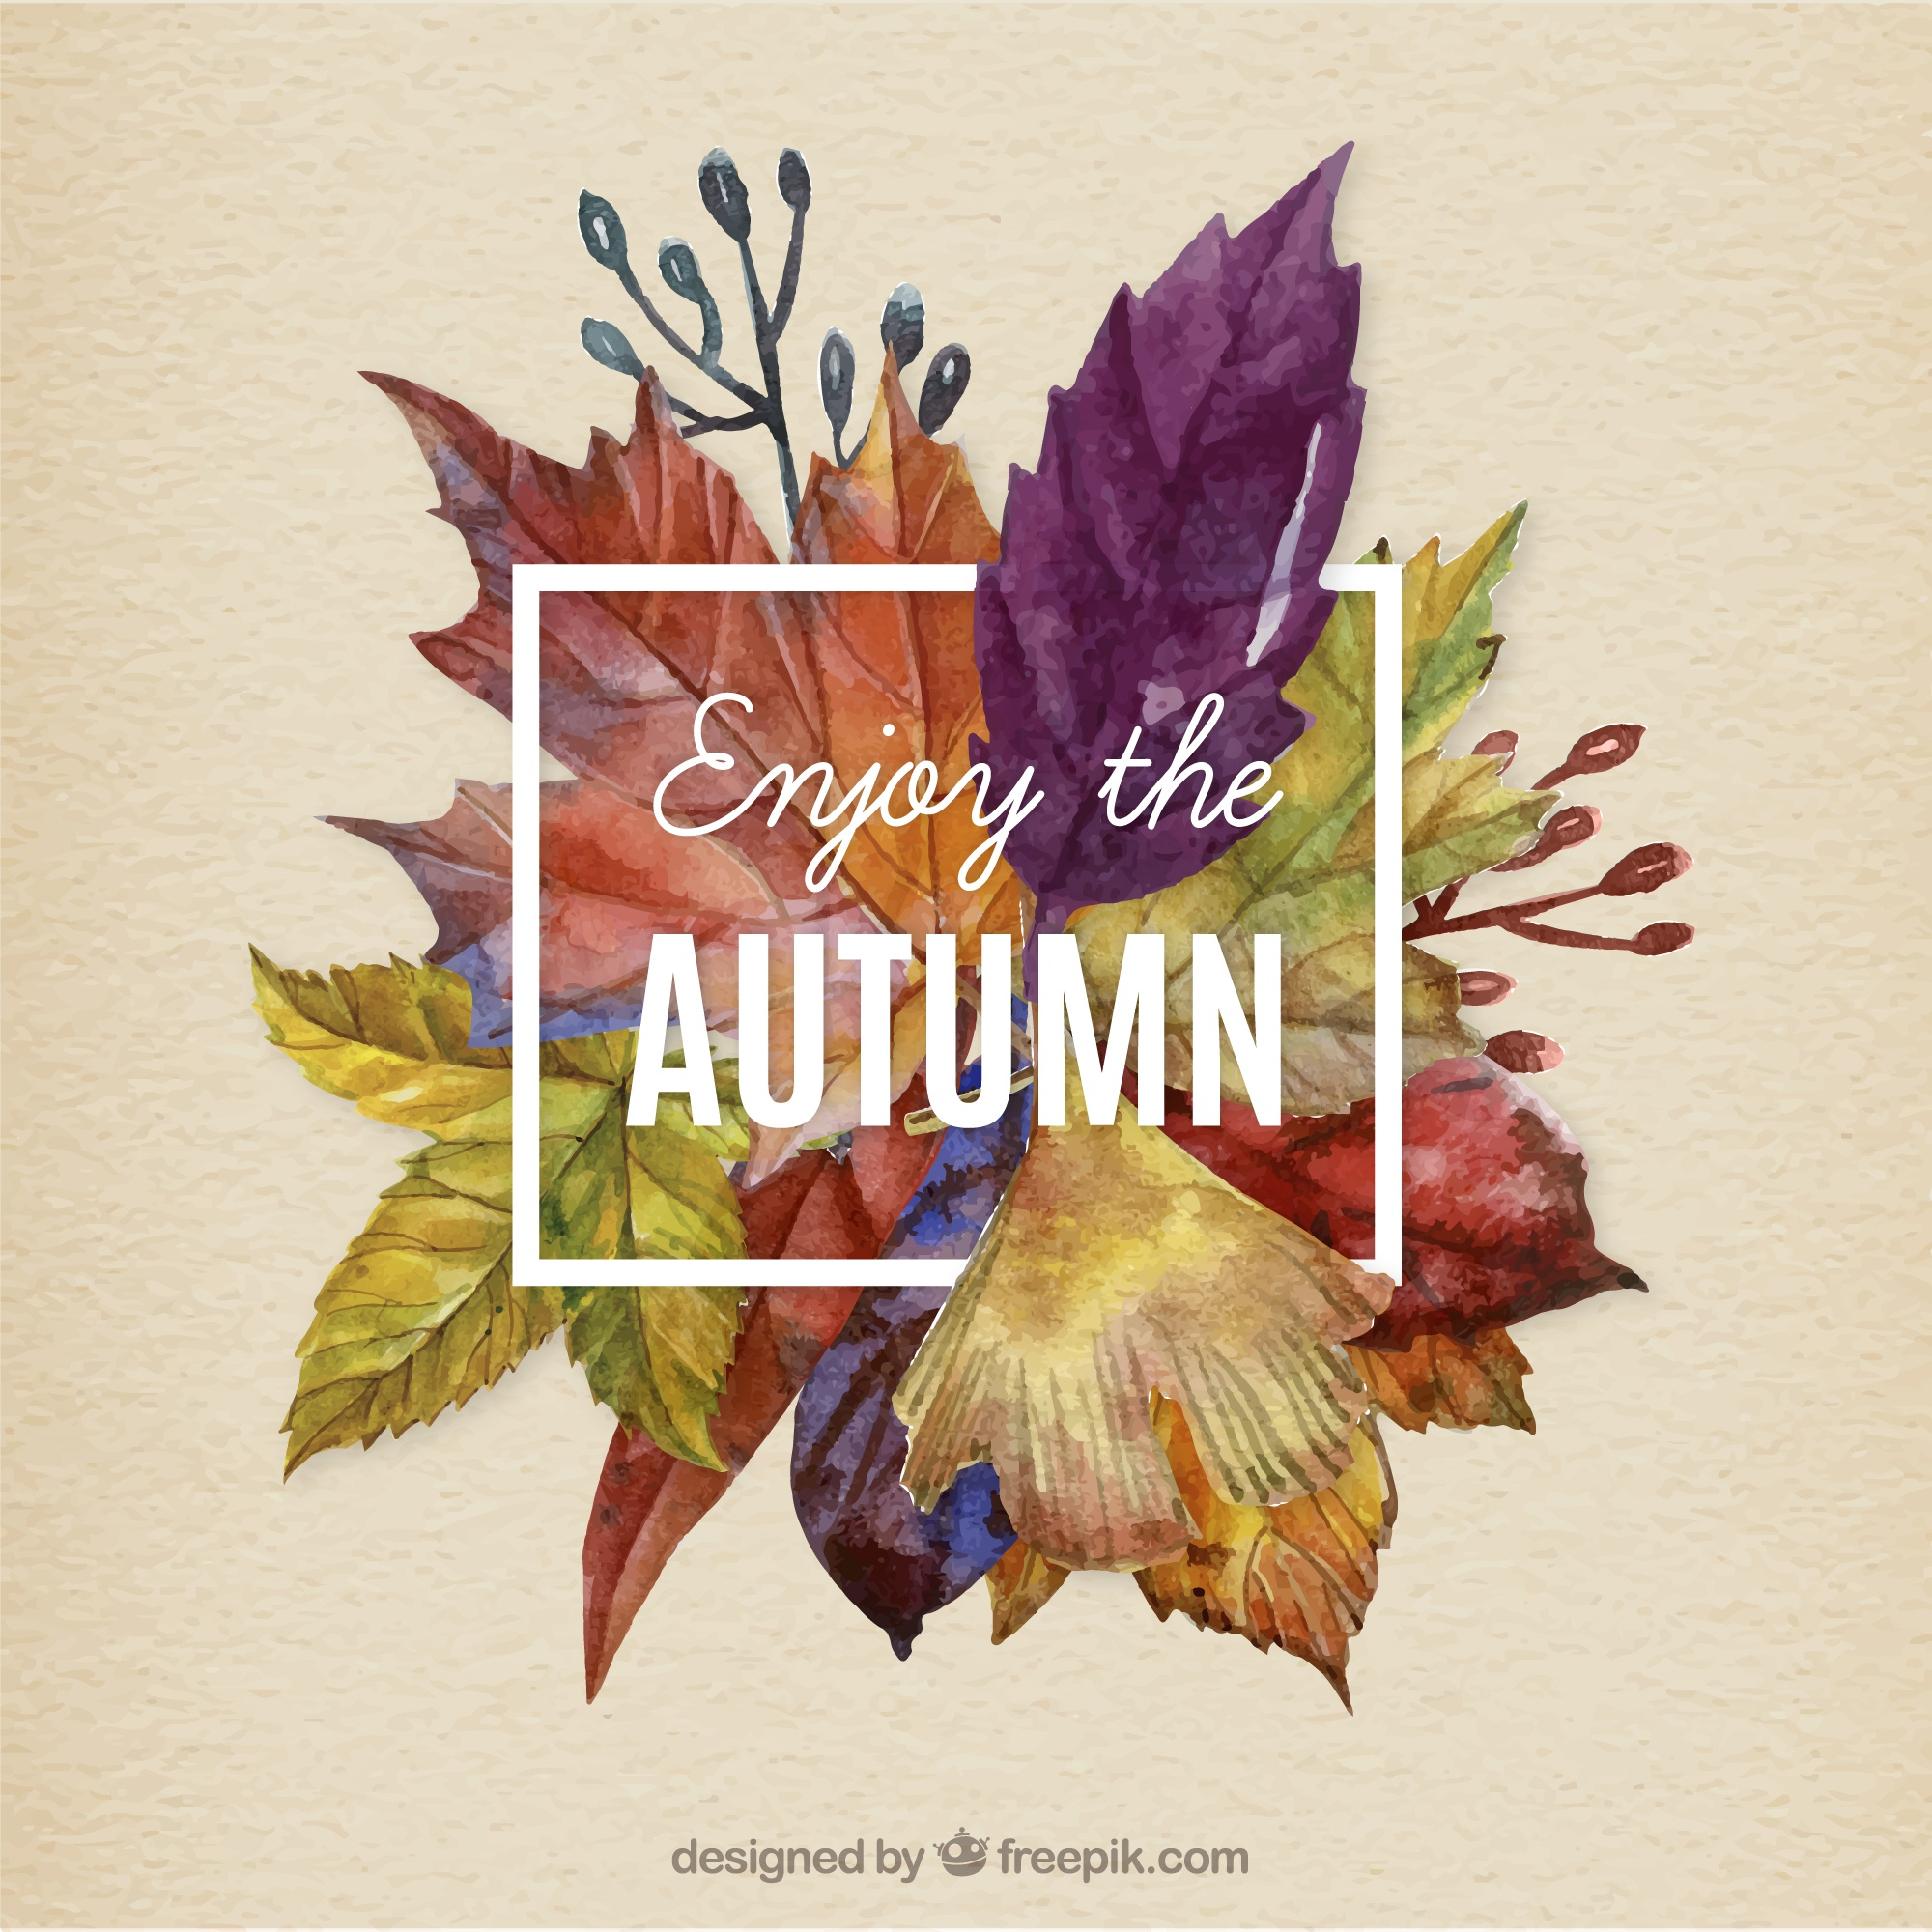 Hand painted autumn leaves background